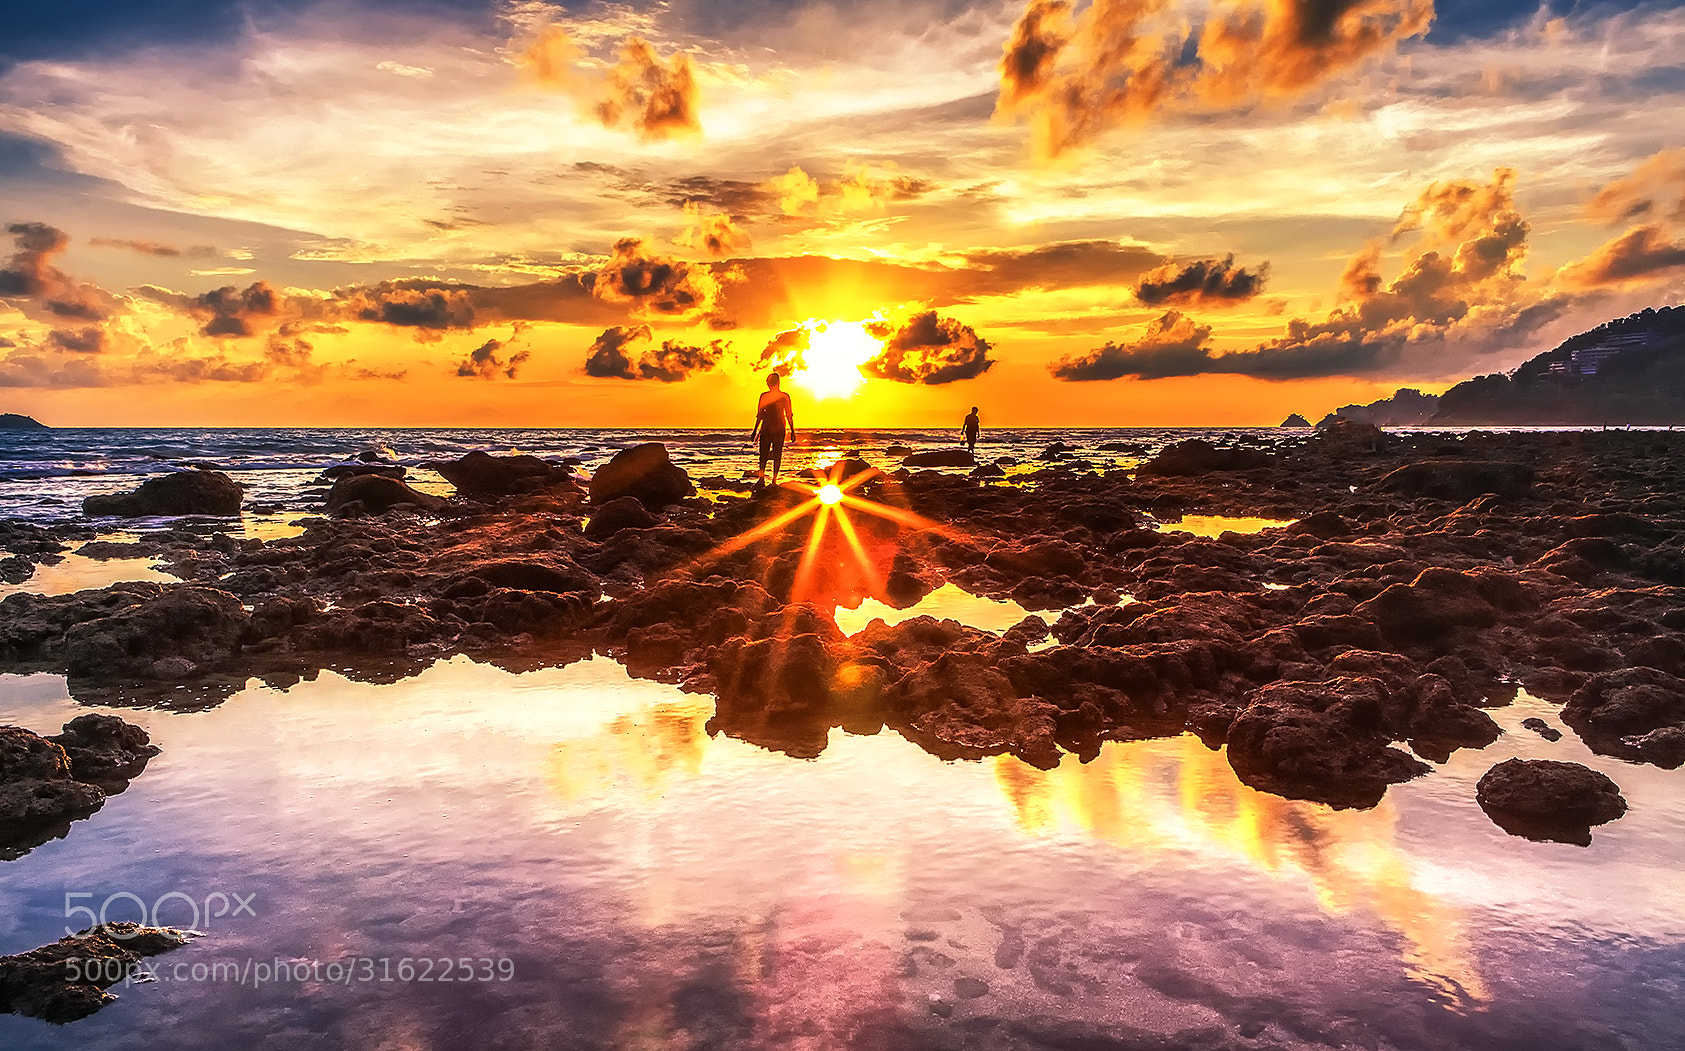 Photograph The sun in the water by Wazabi Bomb Bomb on 500px